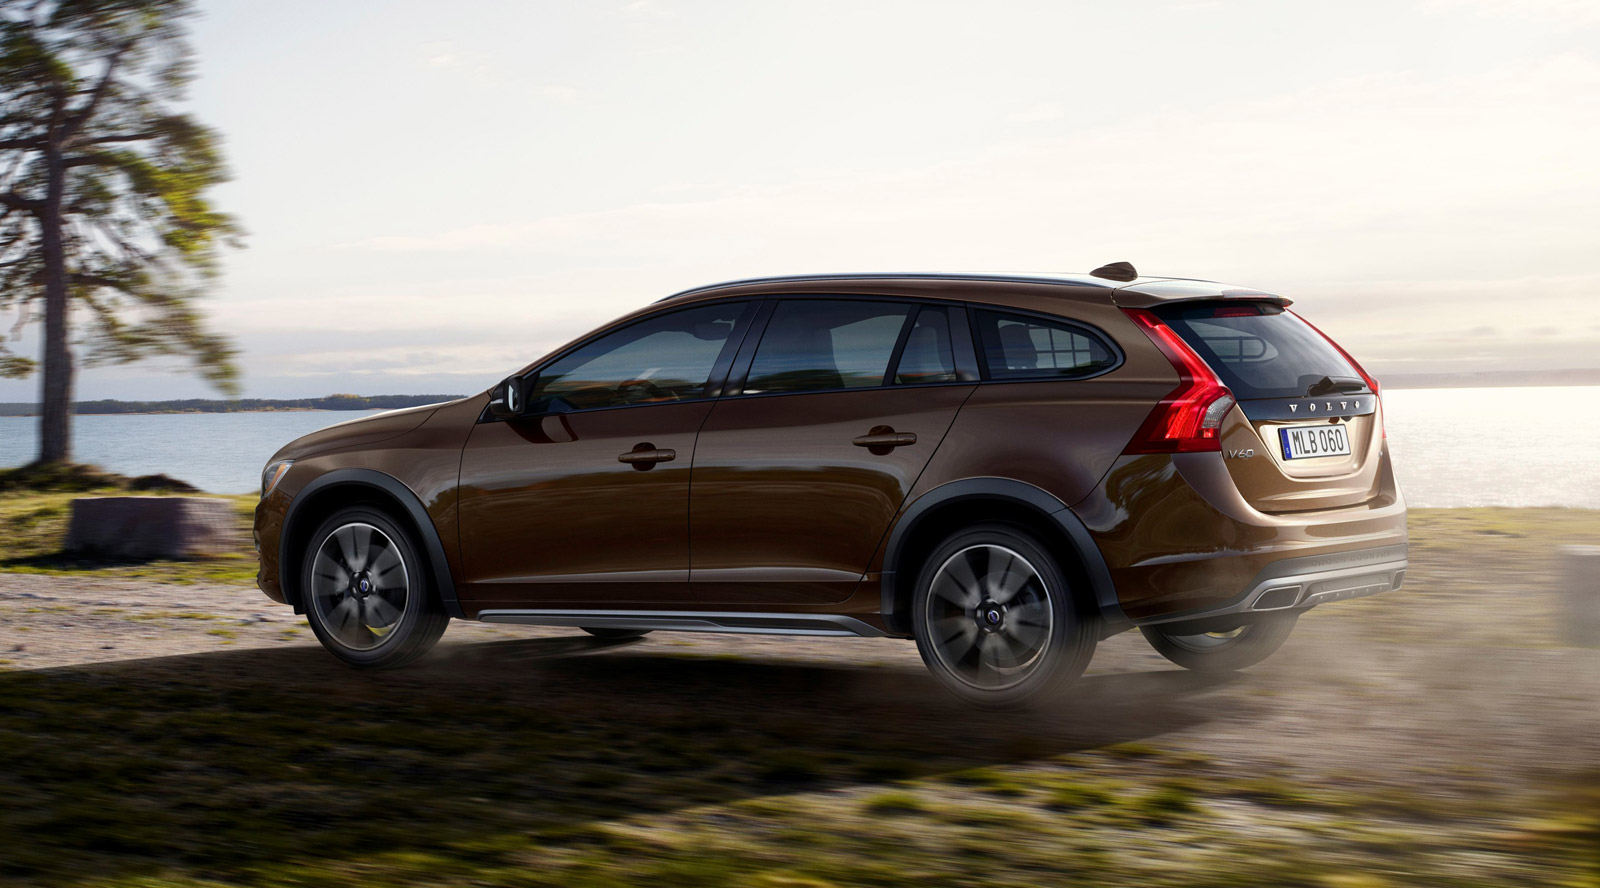 2015 volvo v60 cross country information and photos zombiedrive. Black Bedroom Furniture Sets. Home Design Ideas